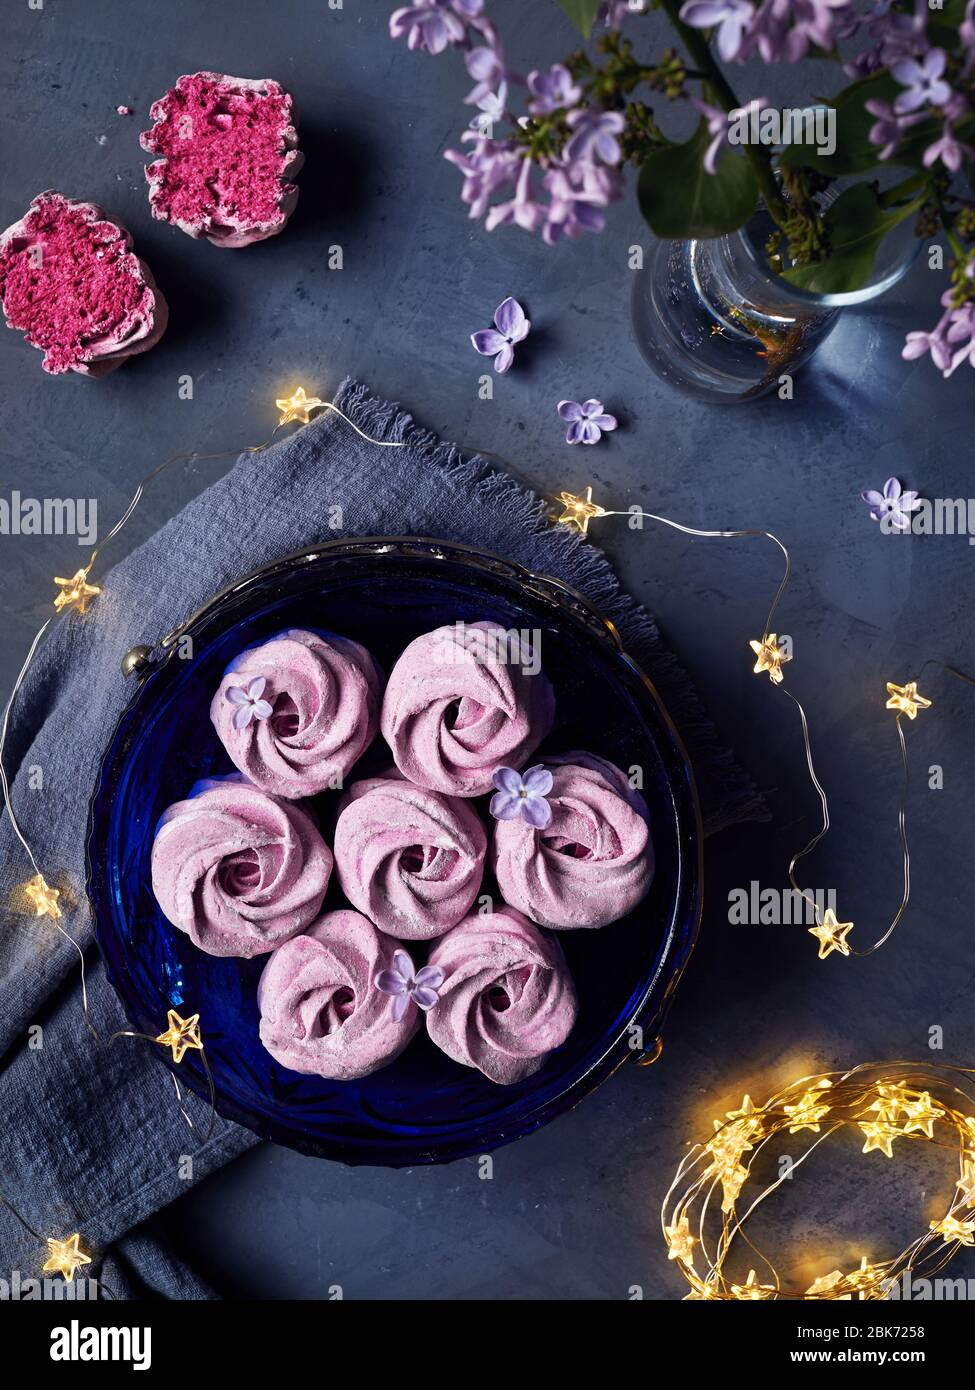 Atmospheric violet sweet homemade Zephyr or Marshmallow from black currant near lilac flowers and magic stars lights on dark background top view Stock Photo